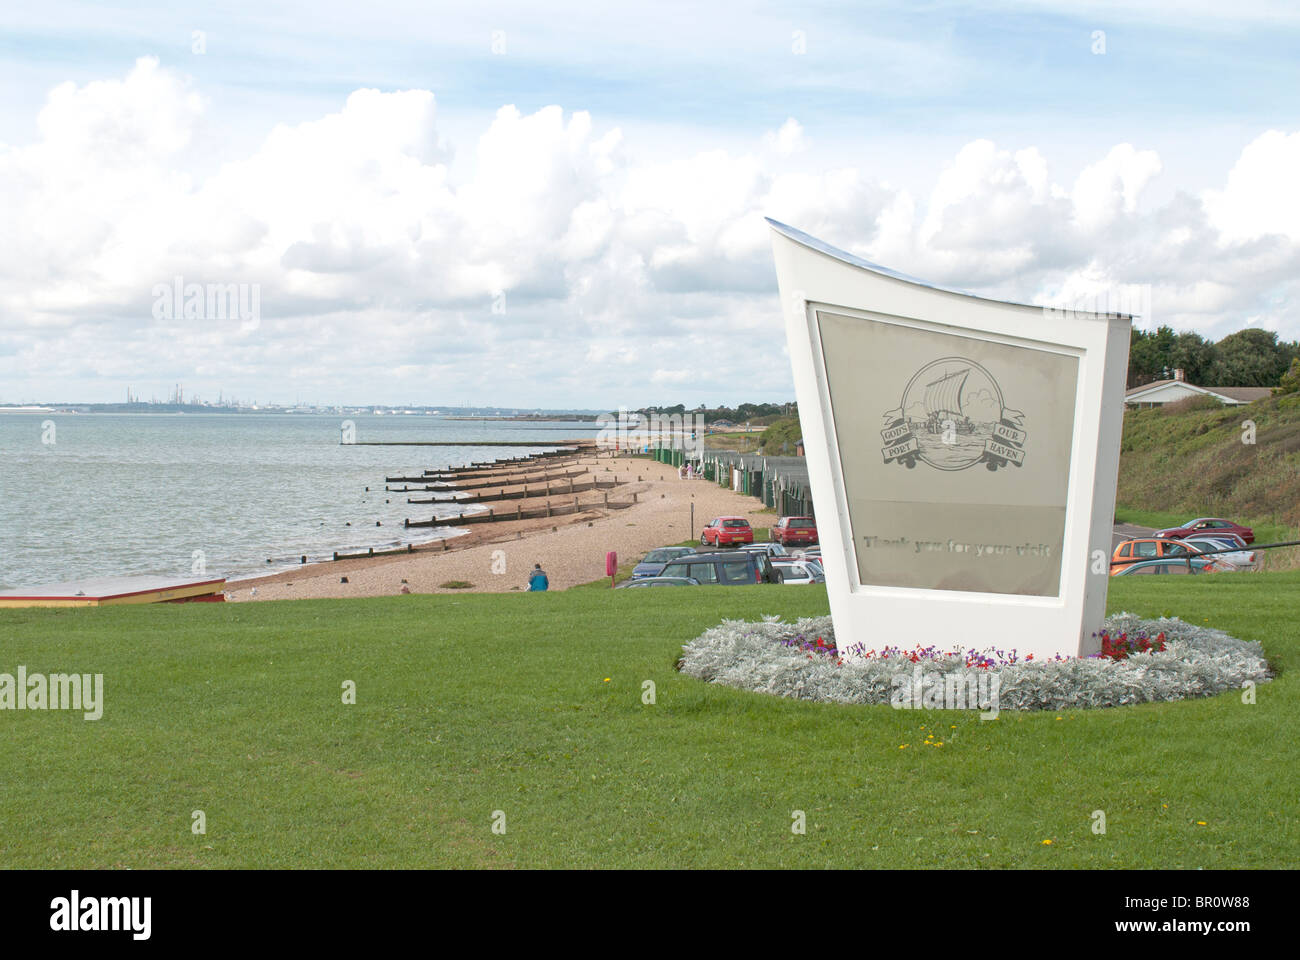 Lee on Solent - Stock Image